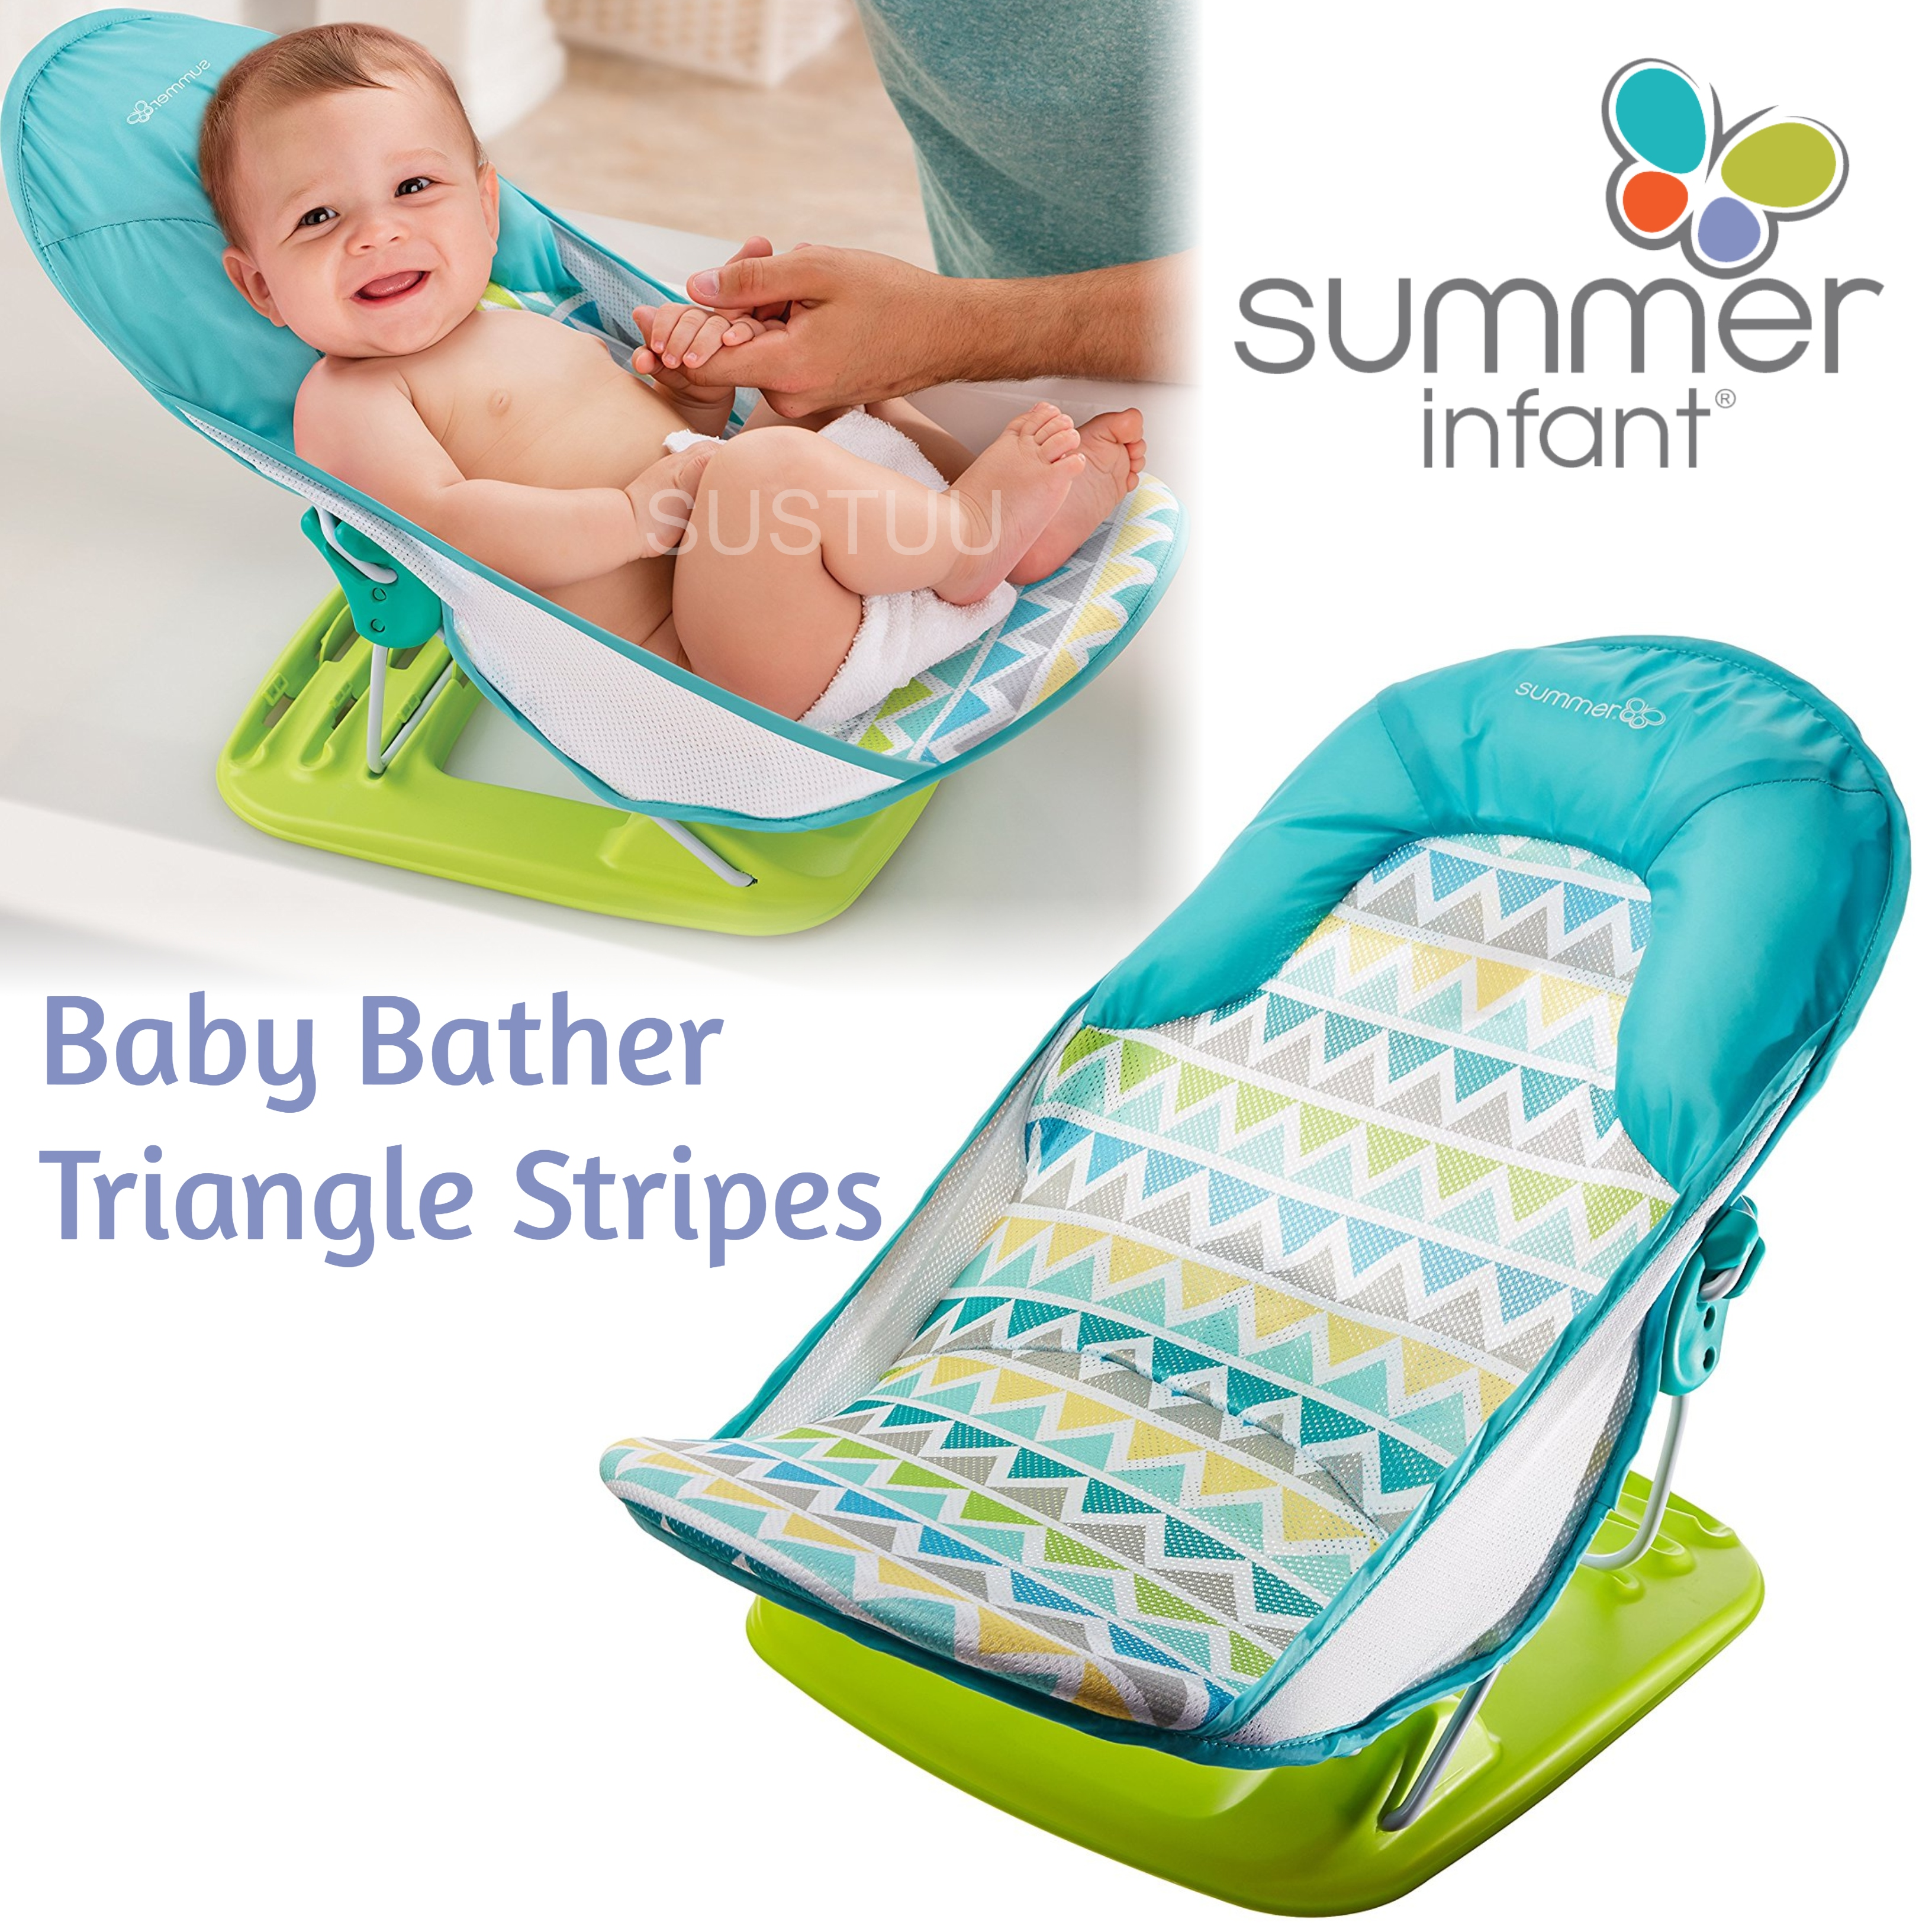 Summer Infant Baby Bather Triangle Stripes|Newborn kid\'s Head ...